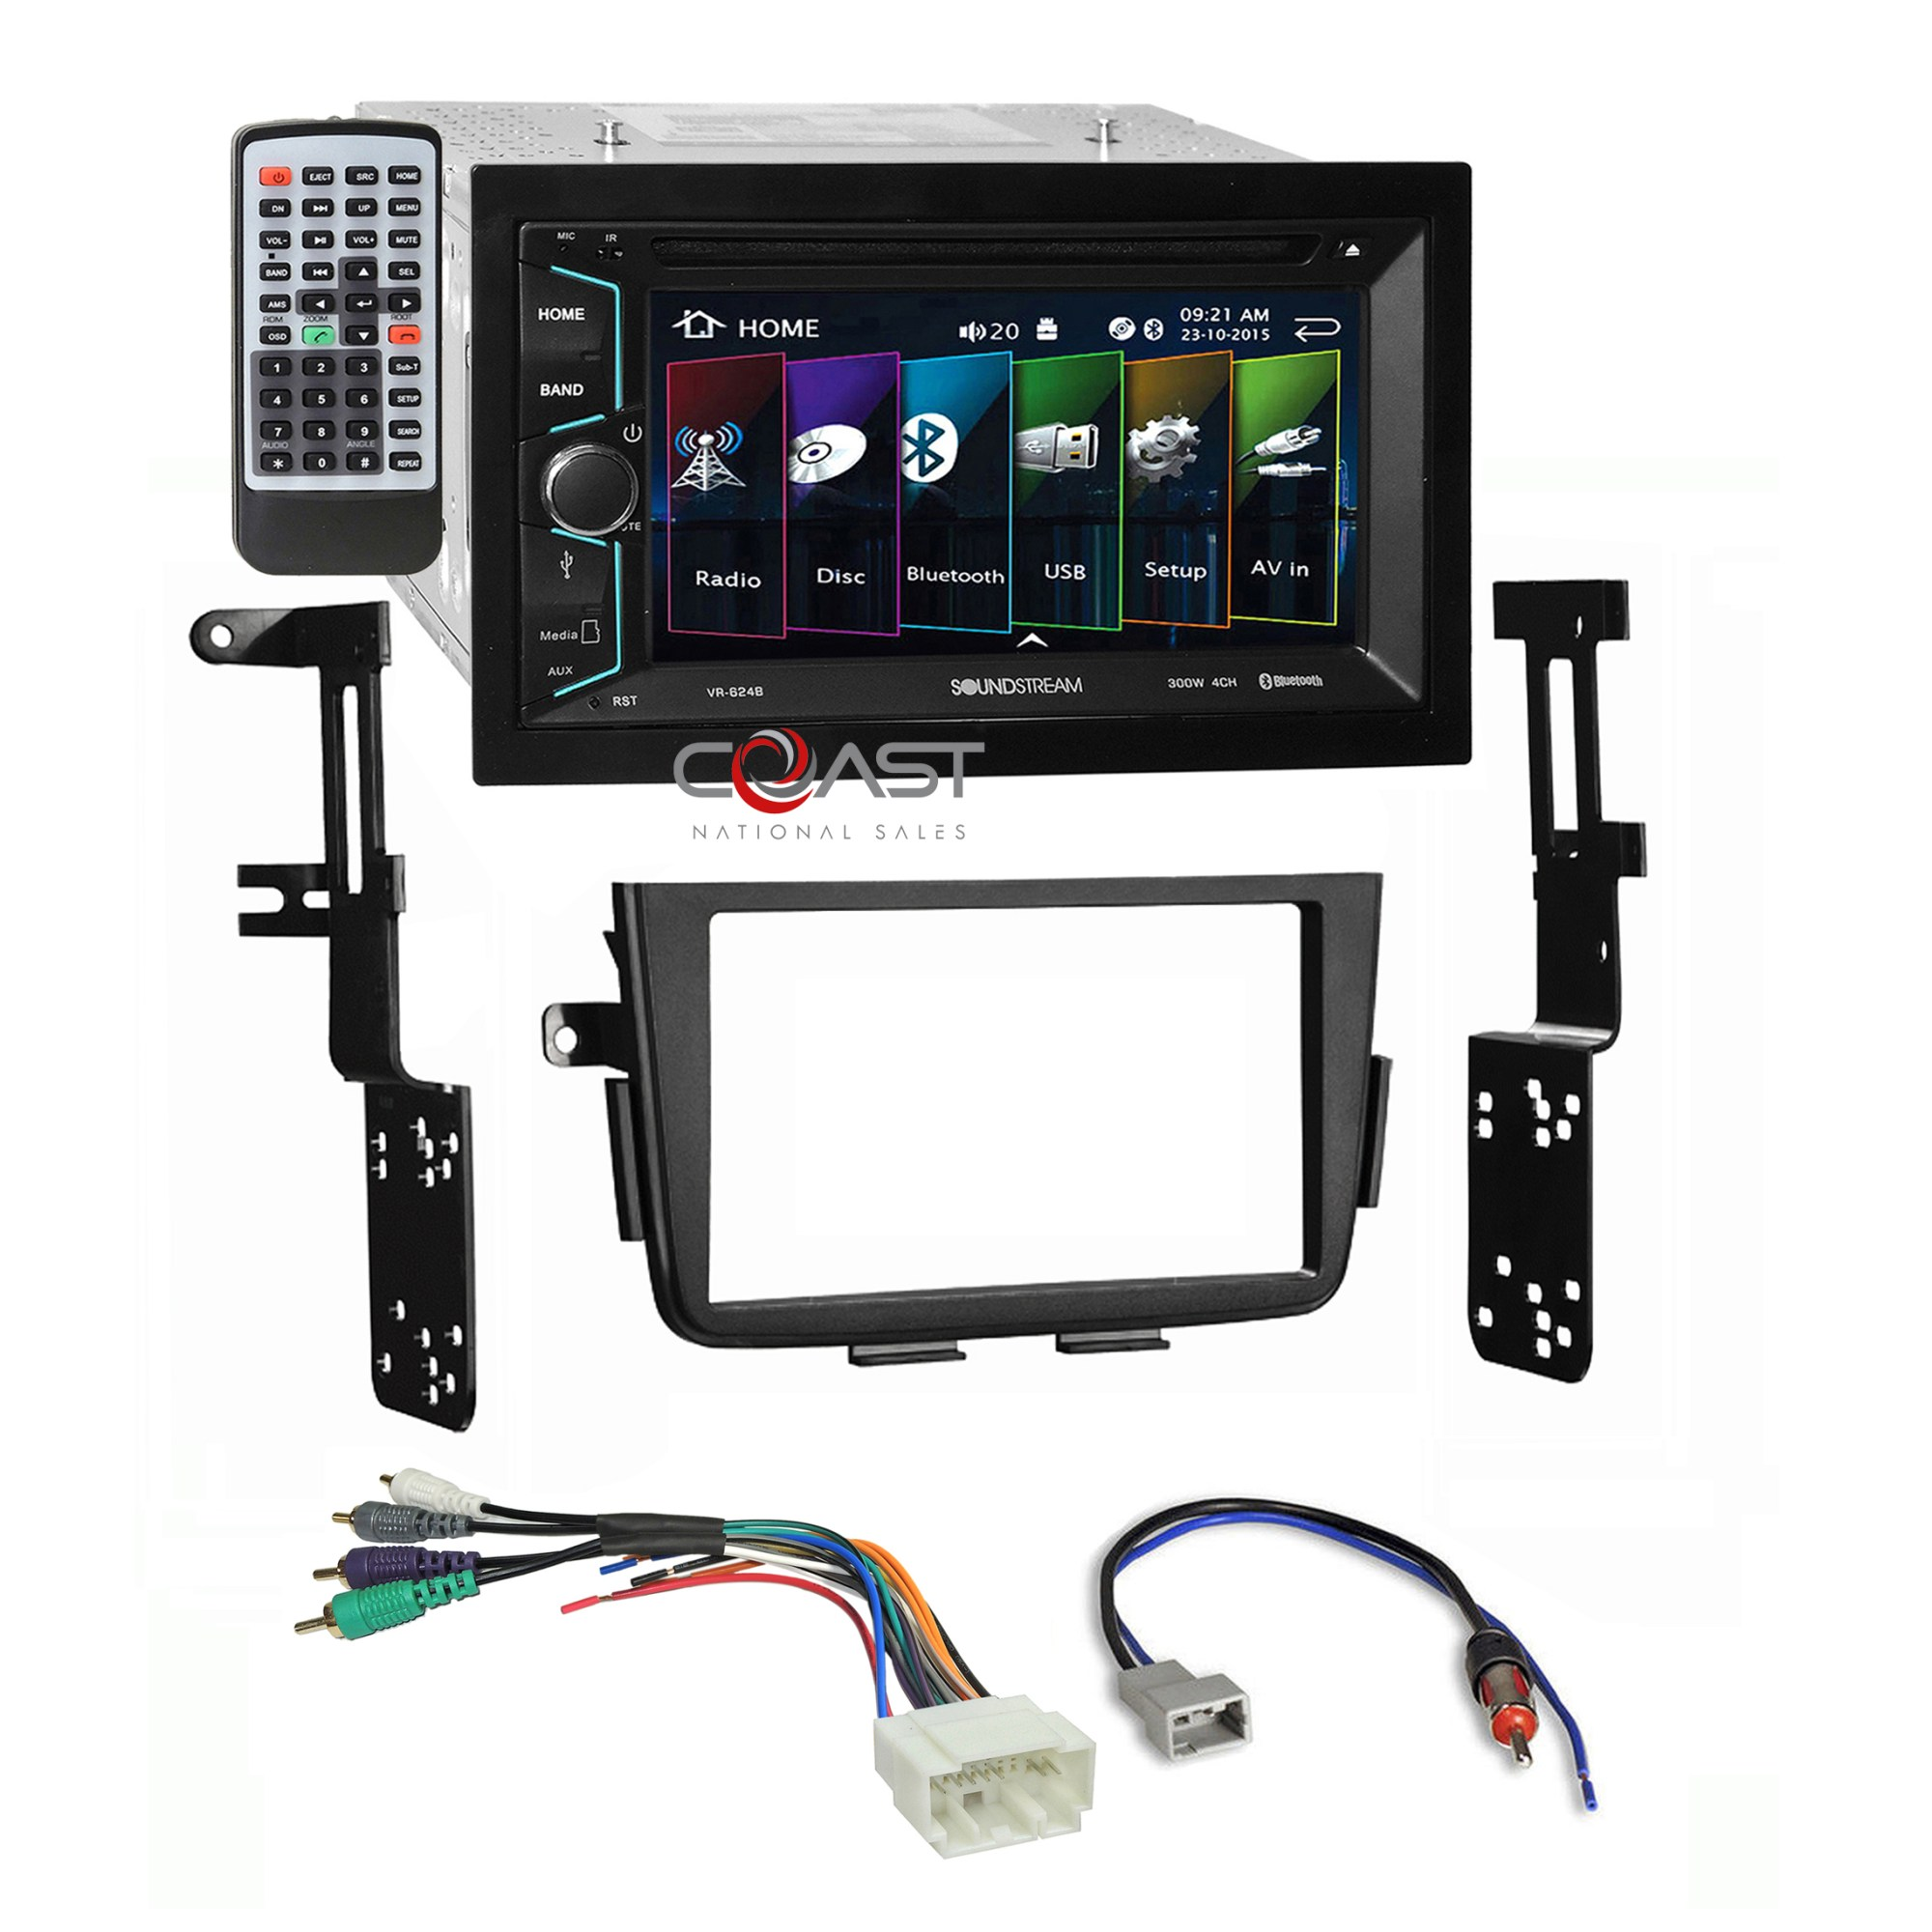 hight resolution of details about soundstream dvd bt camera input stereo dash kit amp harness for 01 06 acura mdx